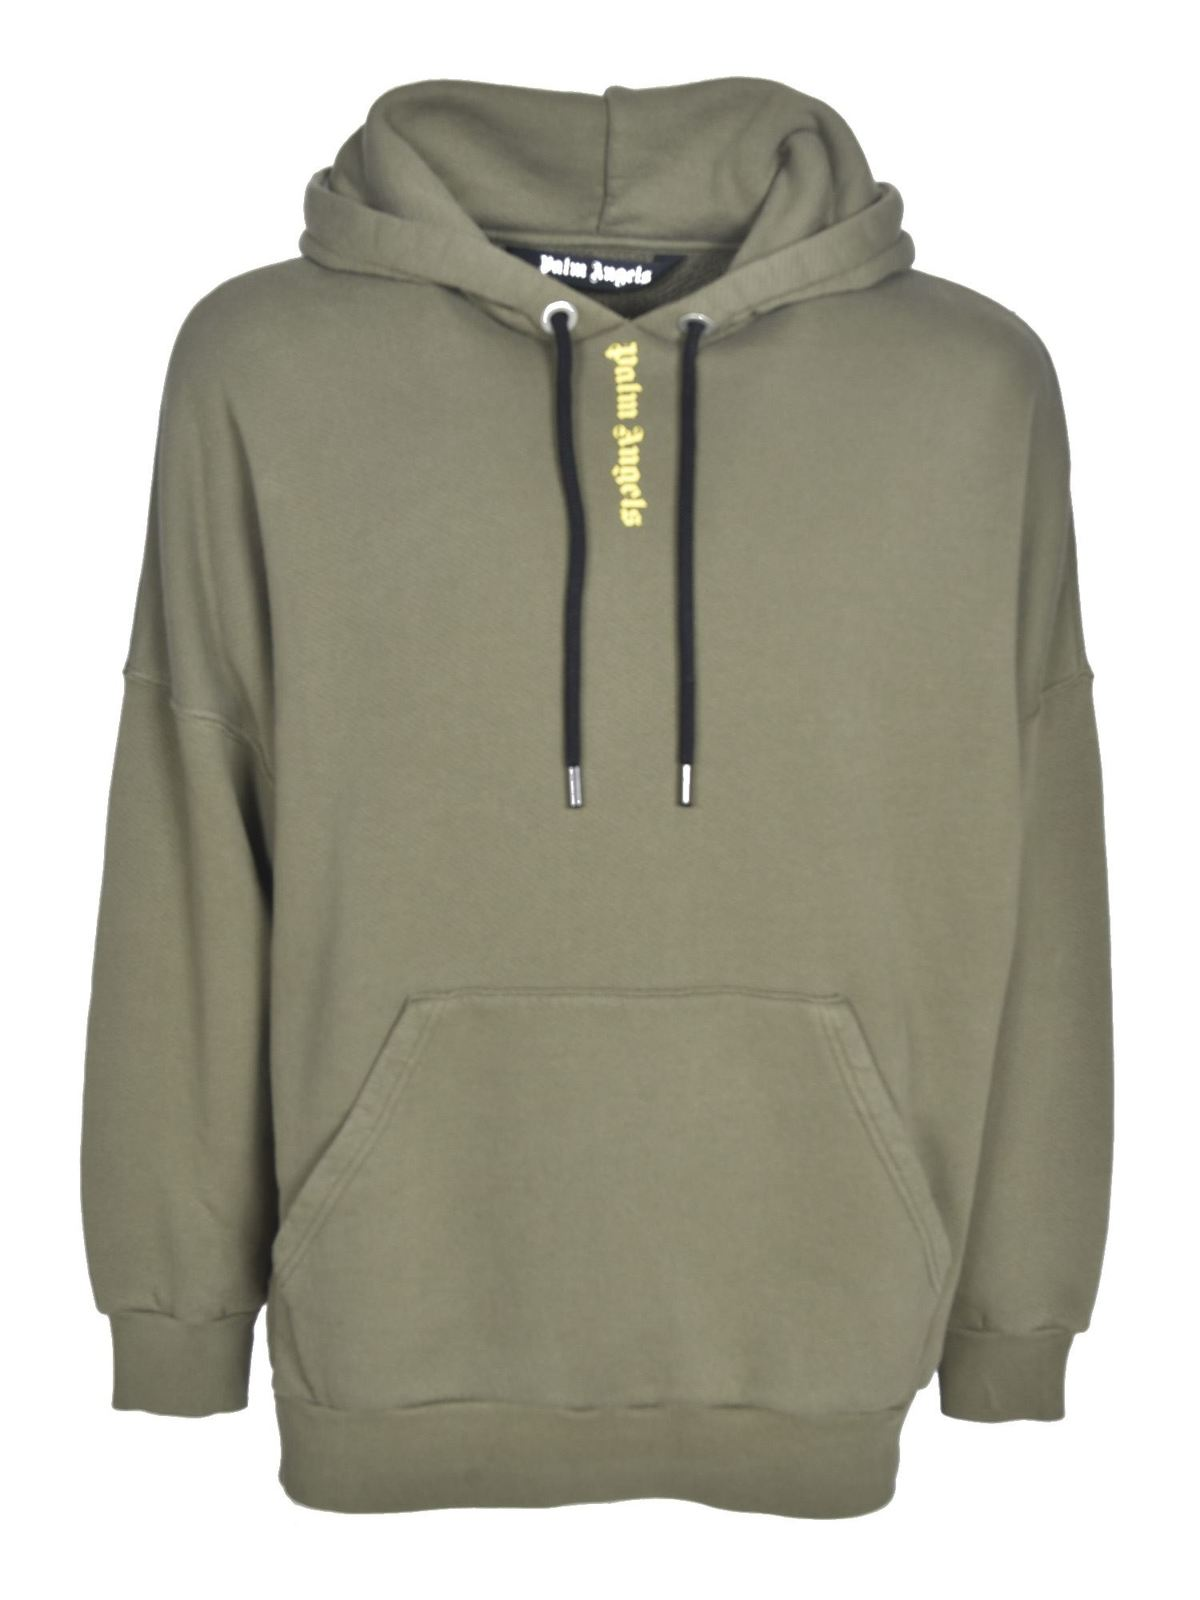 Palm Angels REAR LOGO SWEATSHIRT IN ARMY GREEN